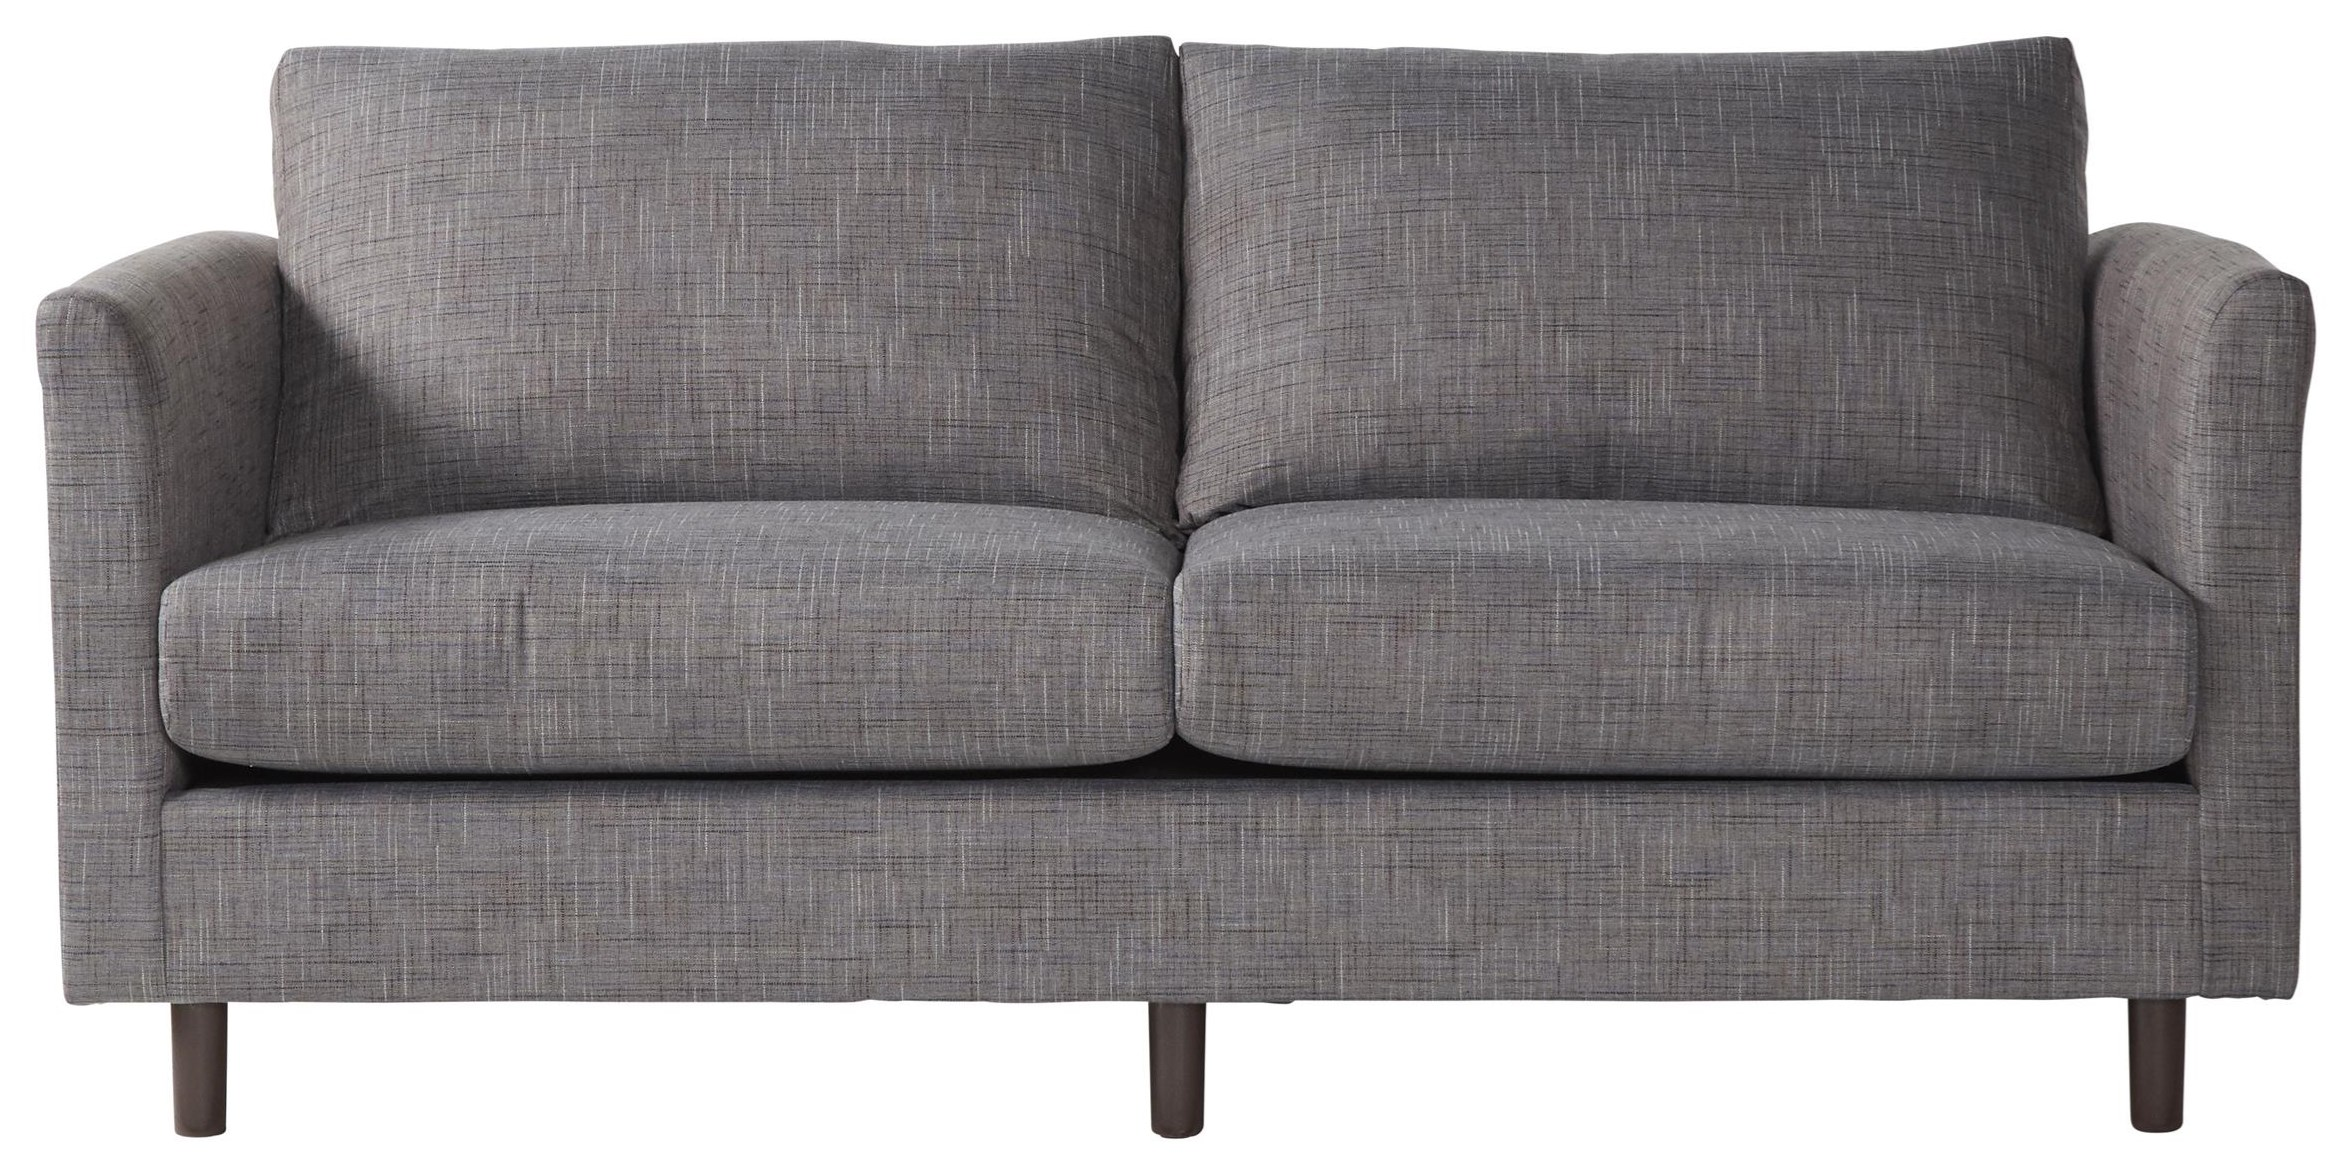 14900 Casual Sofa by Serta Upholstery by Hughes Furniture at VanDrie Home Furnishings